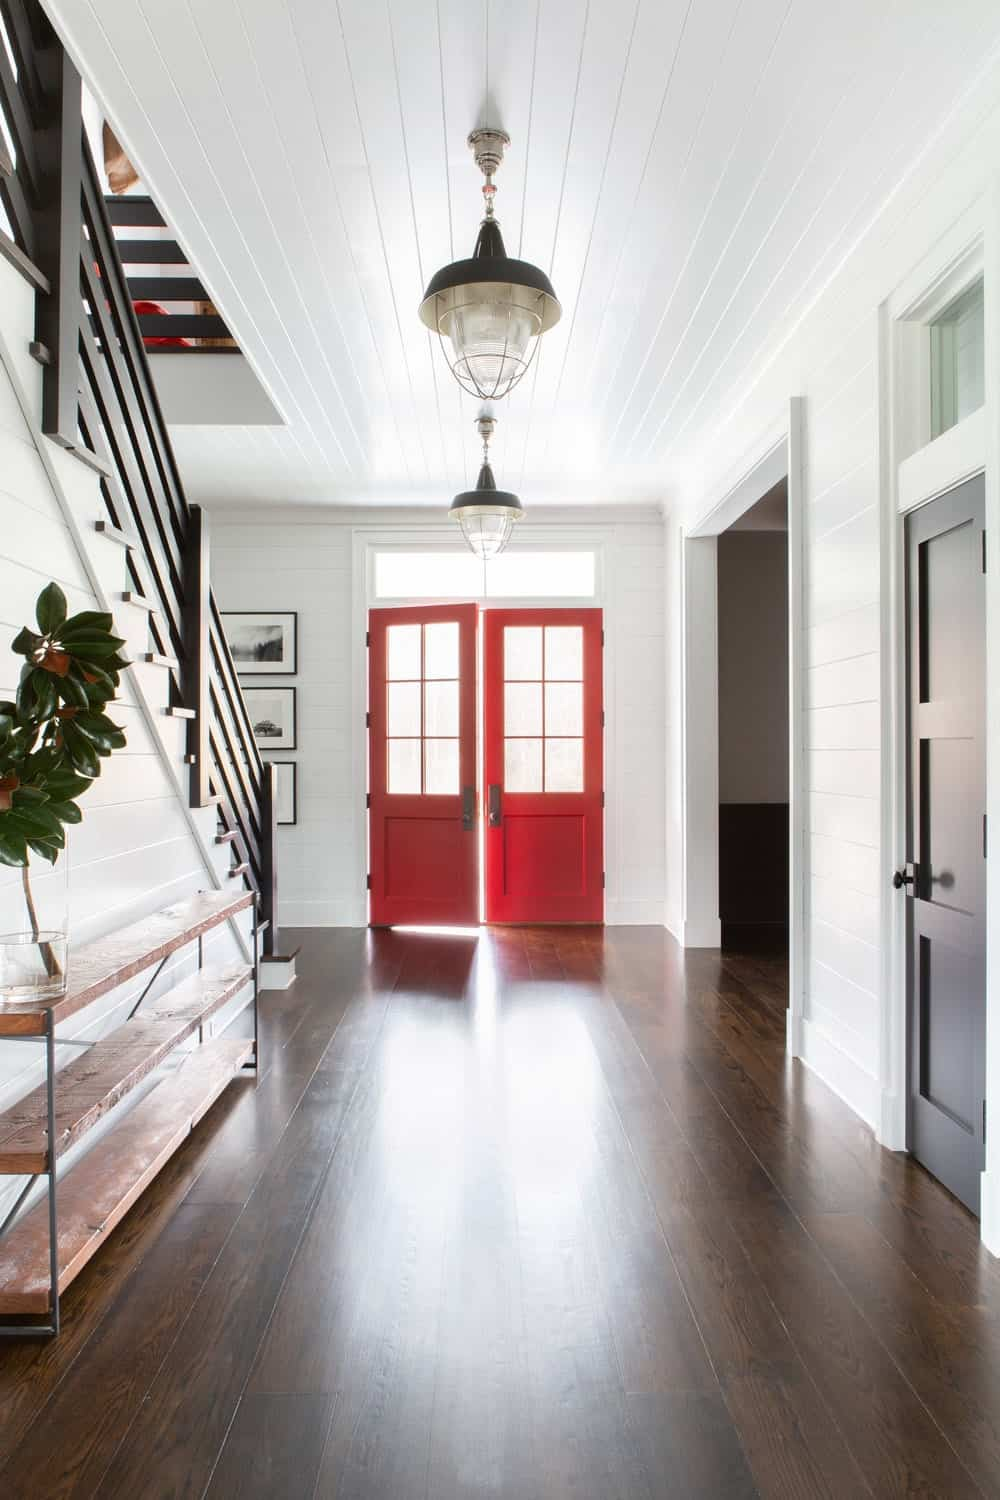 This is a beautiful and simple welcoming foyer with a pair of red wooden main doors that have glass panels on them bringing in an abundance of natural lighting to the dark hardwood flooring and white shiplap ceiling bearing pendant lights.